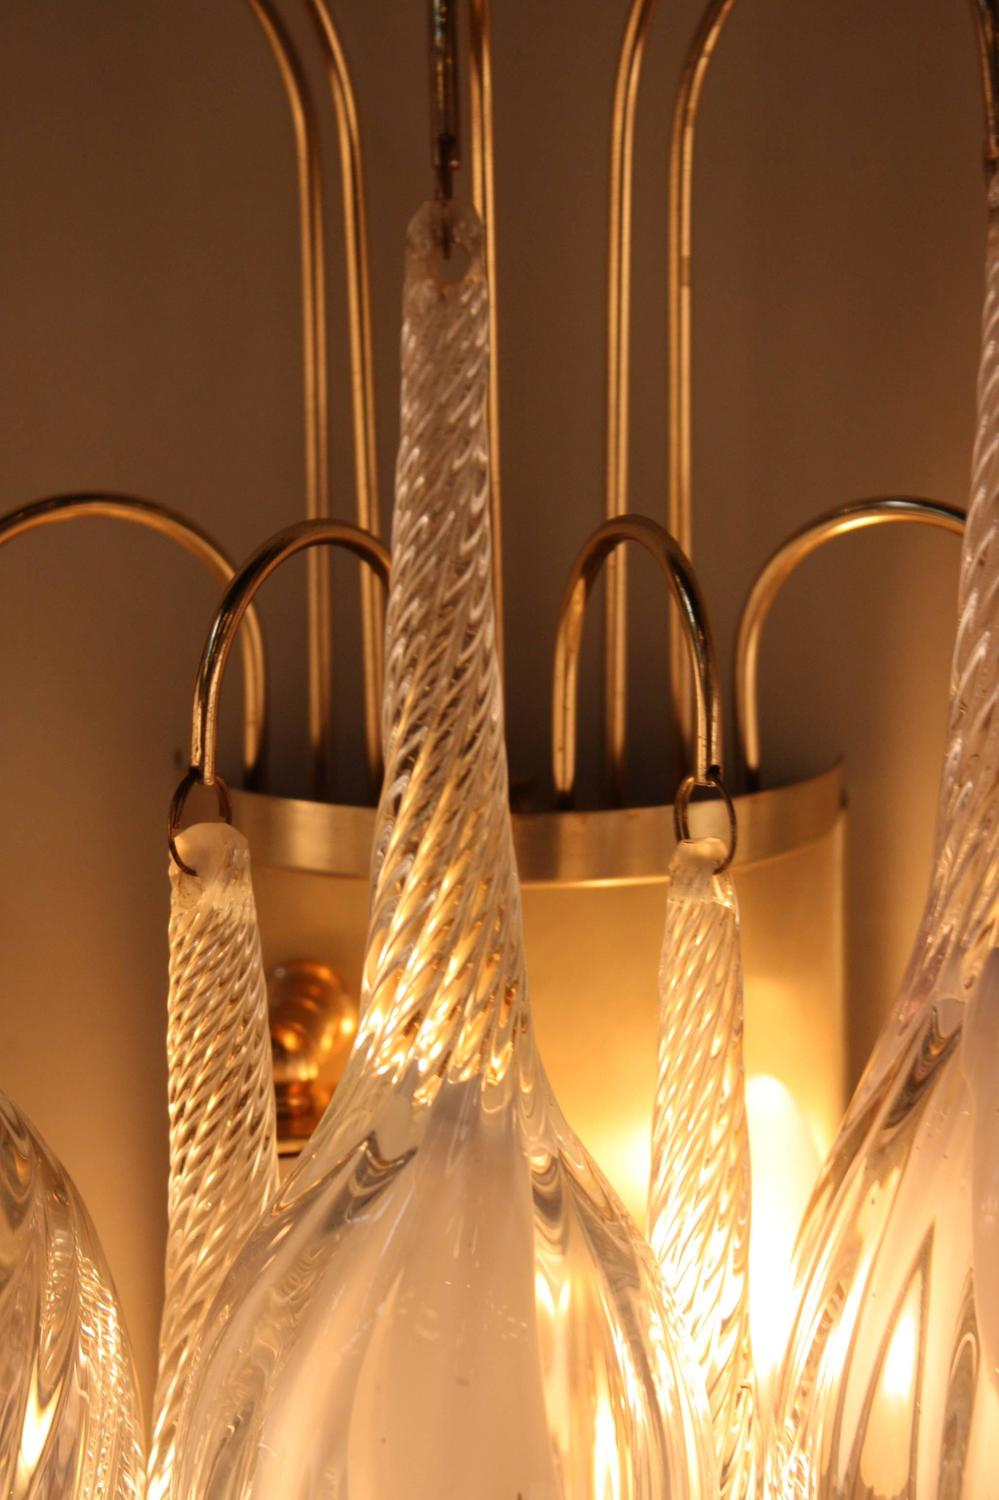 Wall Sconces Blown Glass : Pair of Italian Large Tear Drop Blown Glass Wall Sconces at 1stdibs